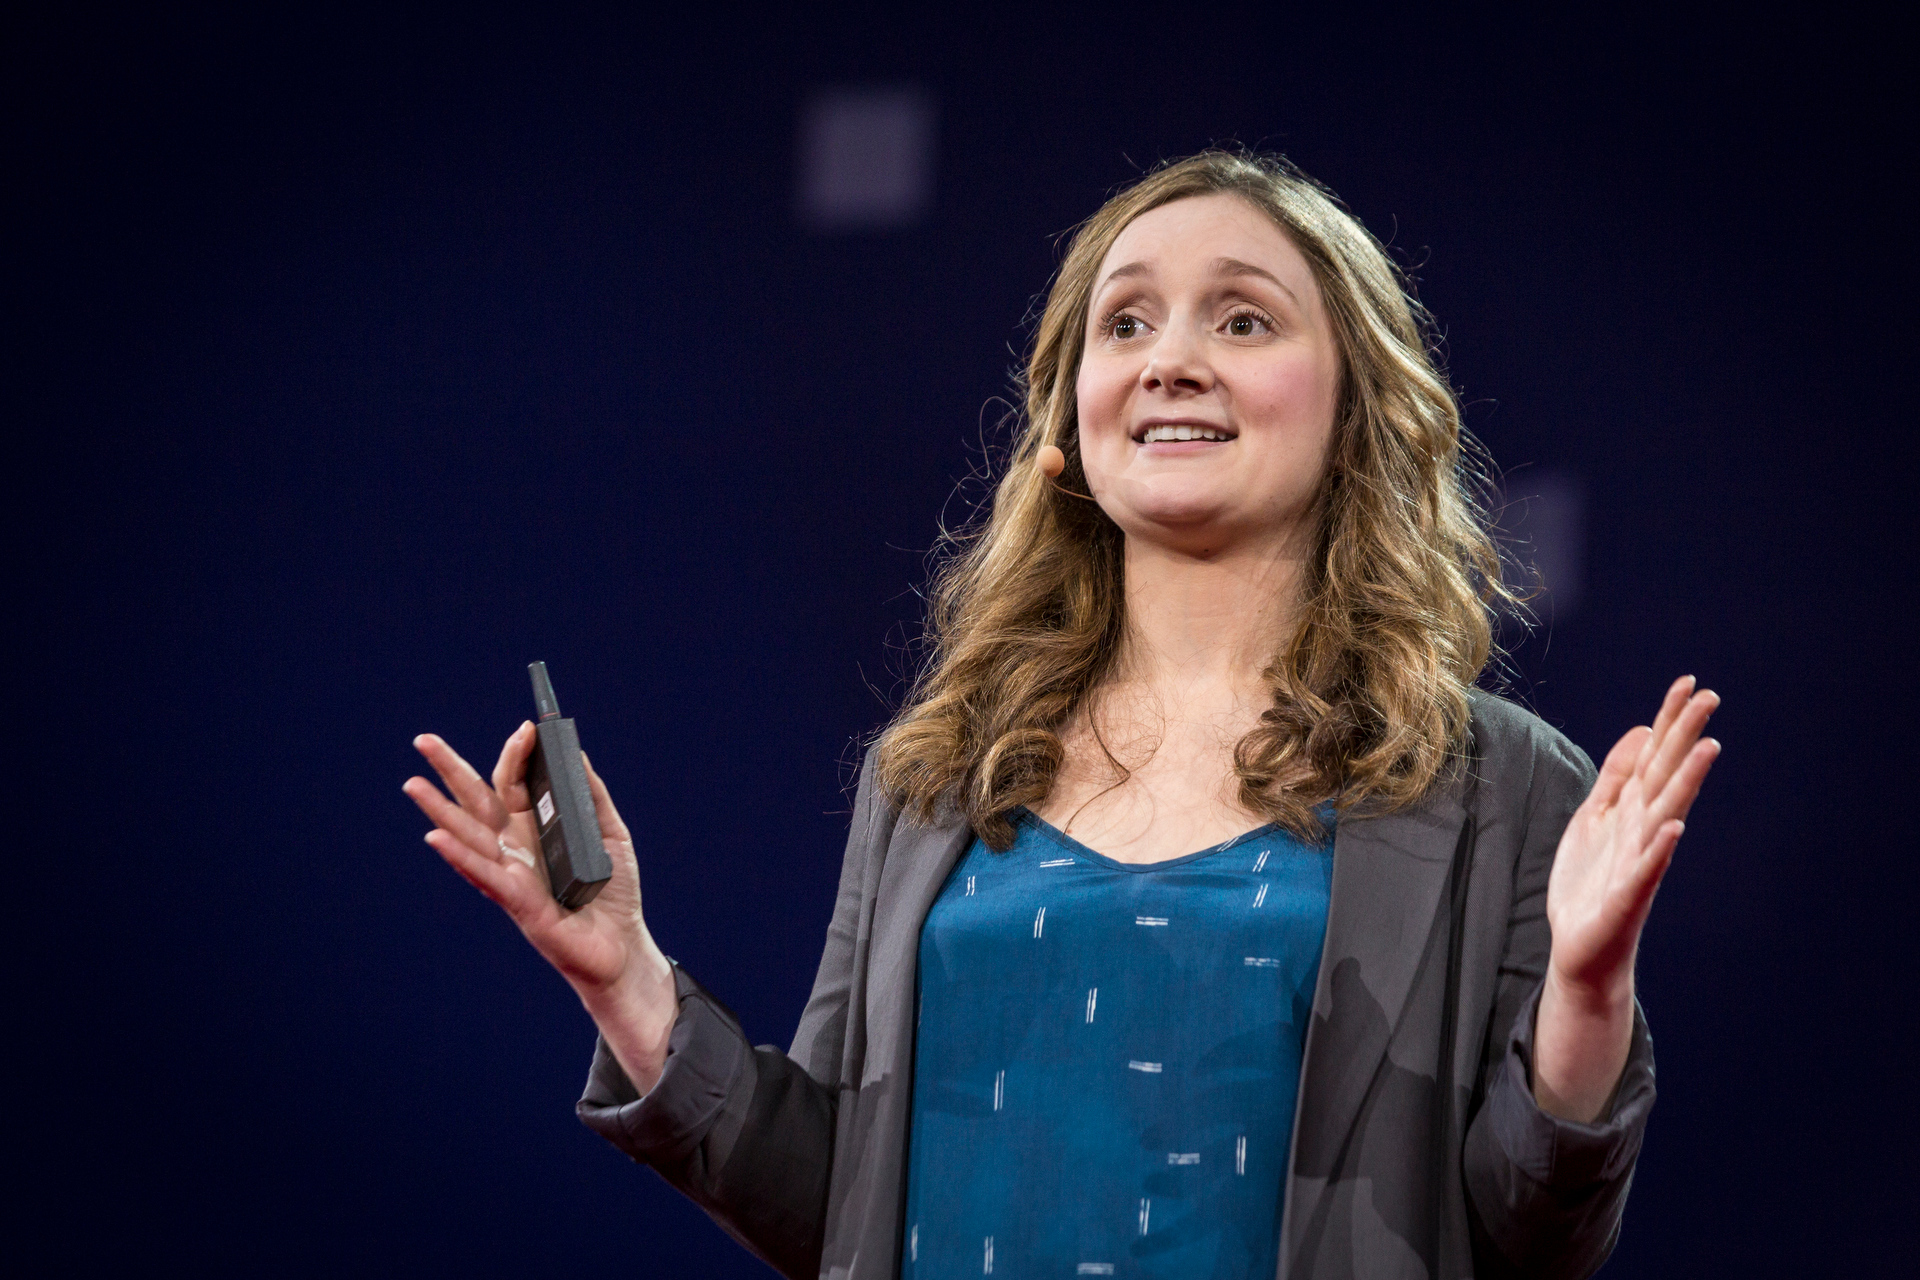 Alice Goffman speaks at TED2015 - Truth and Dare, Session 9. Photo: Bret Hartman/TED